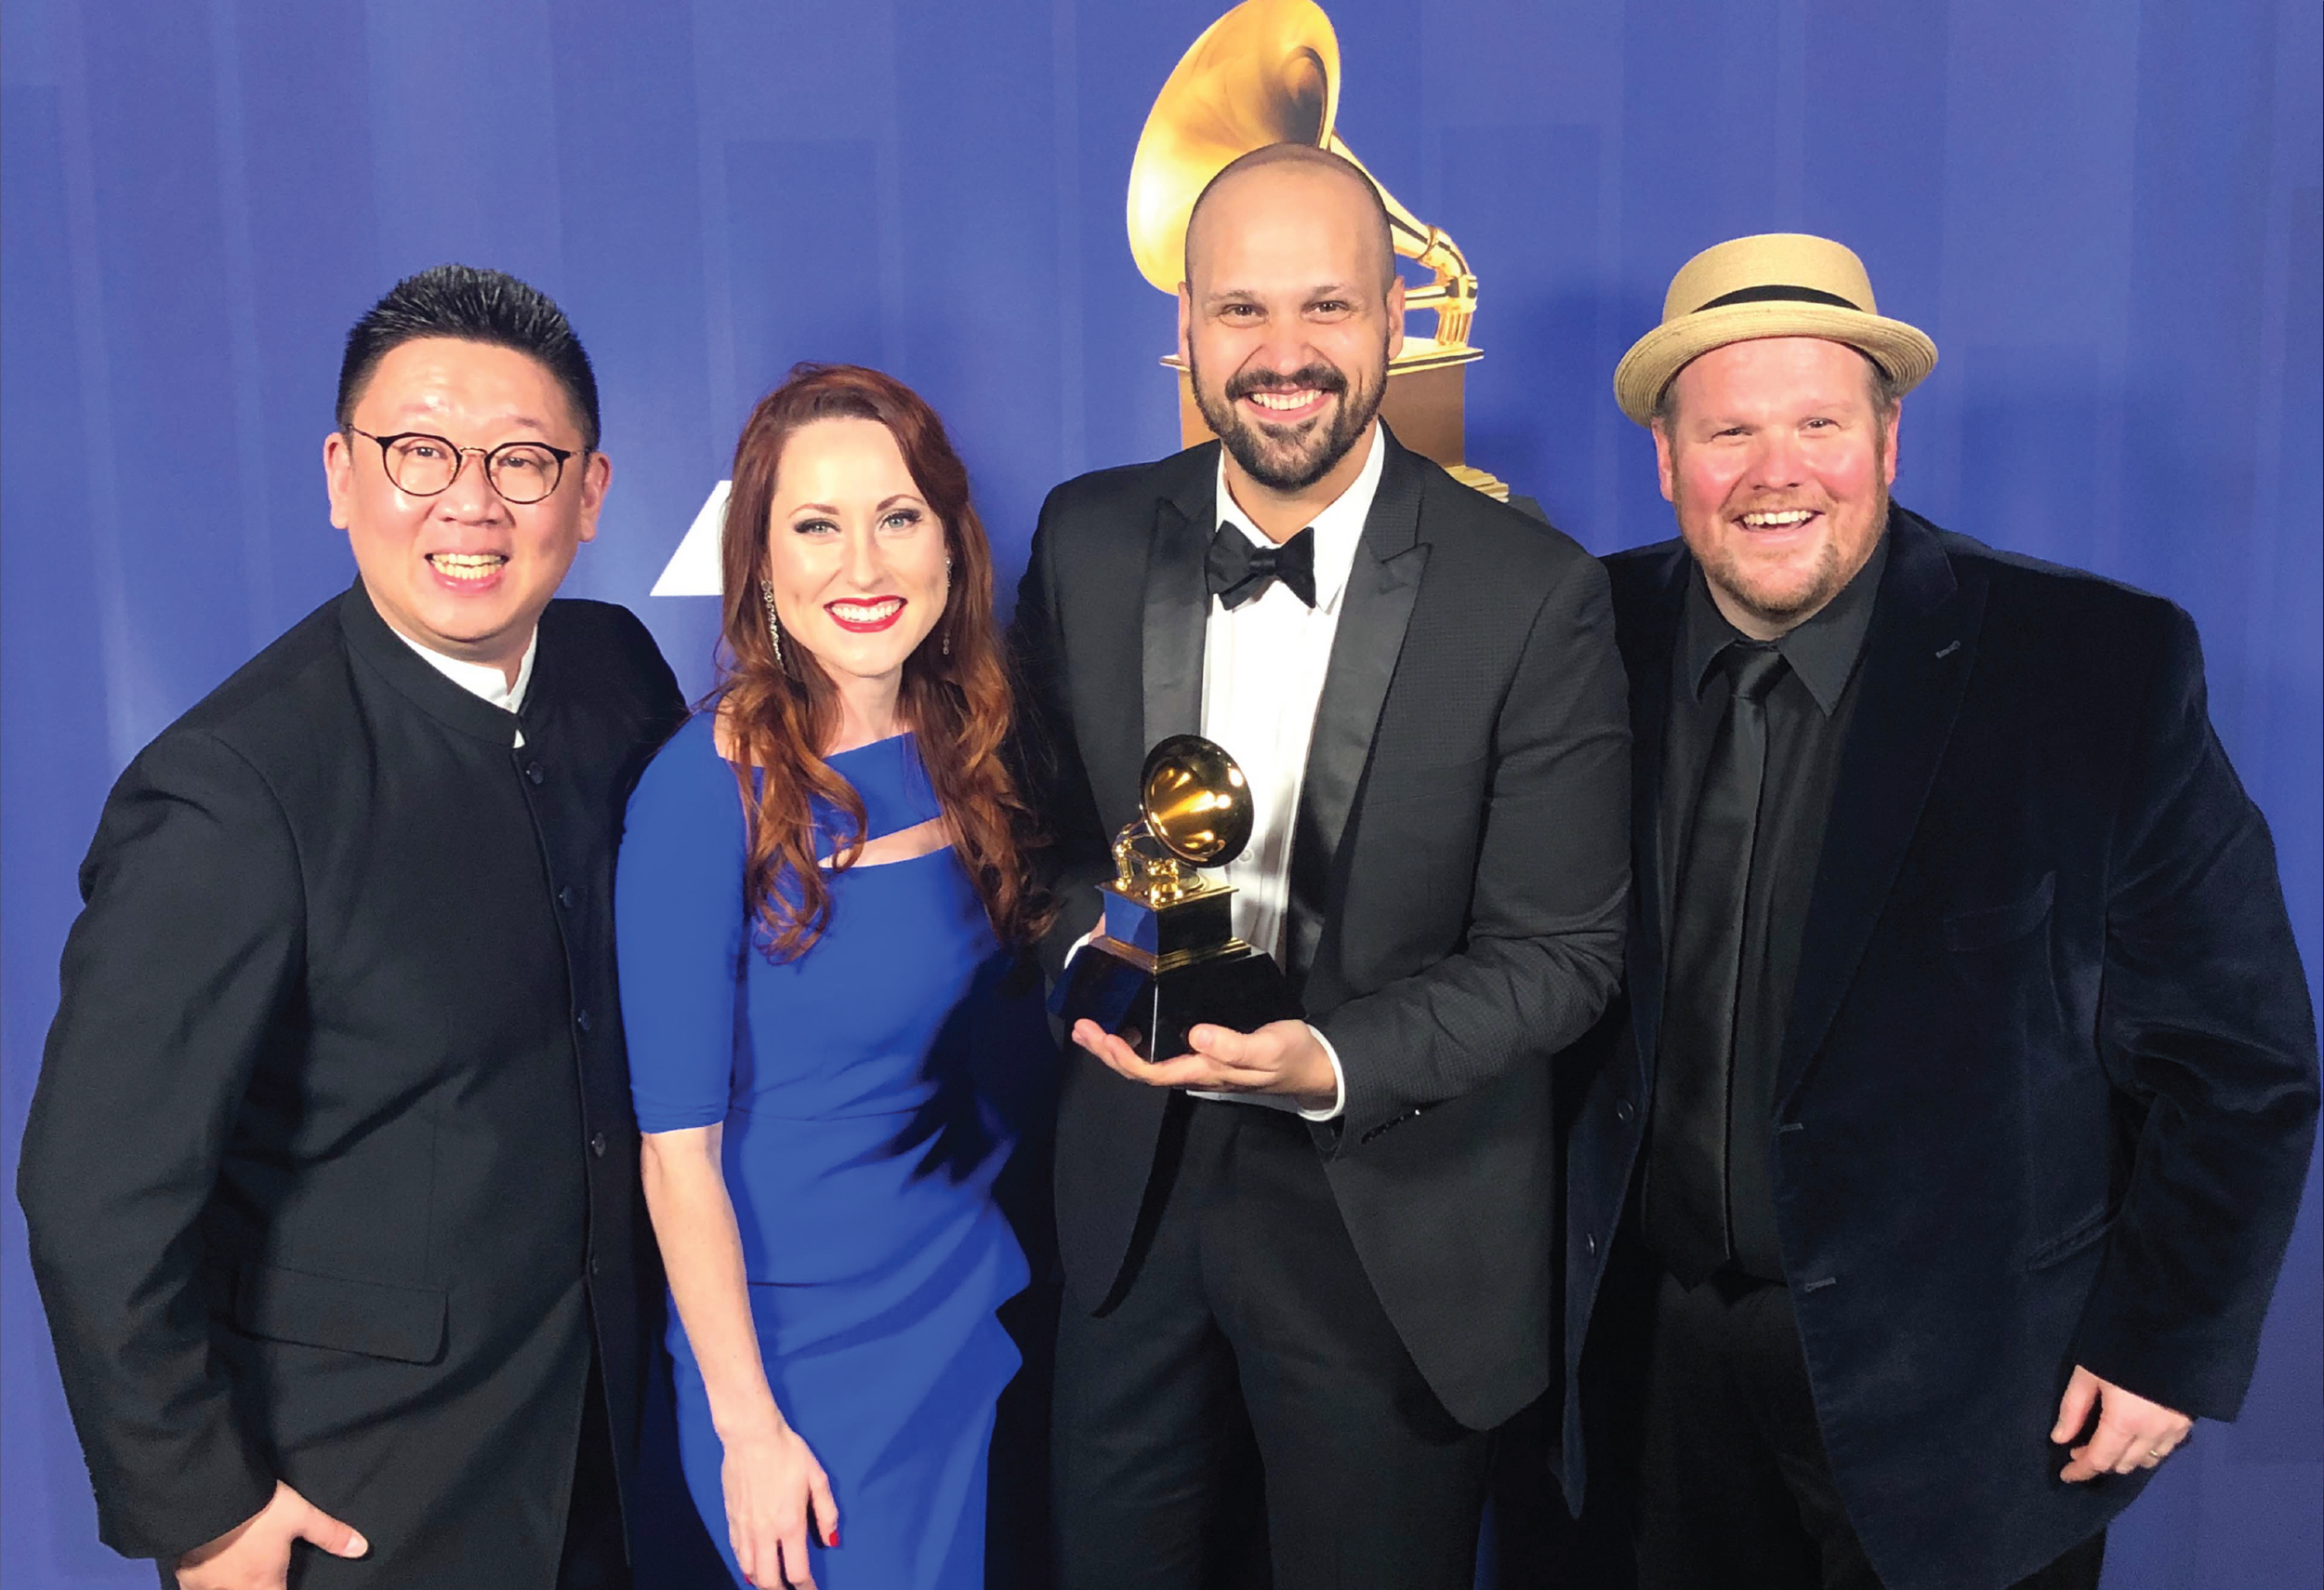 Faust Cast Member Wins a Grammy - Edward Parks (Faust's Valentin) won a Grammy for his role as Steve Jobs in The (R)evolution of Steve Jobs. The Grammy was awarded for Best Opera Recording.